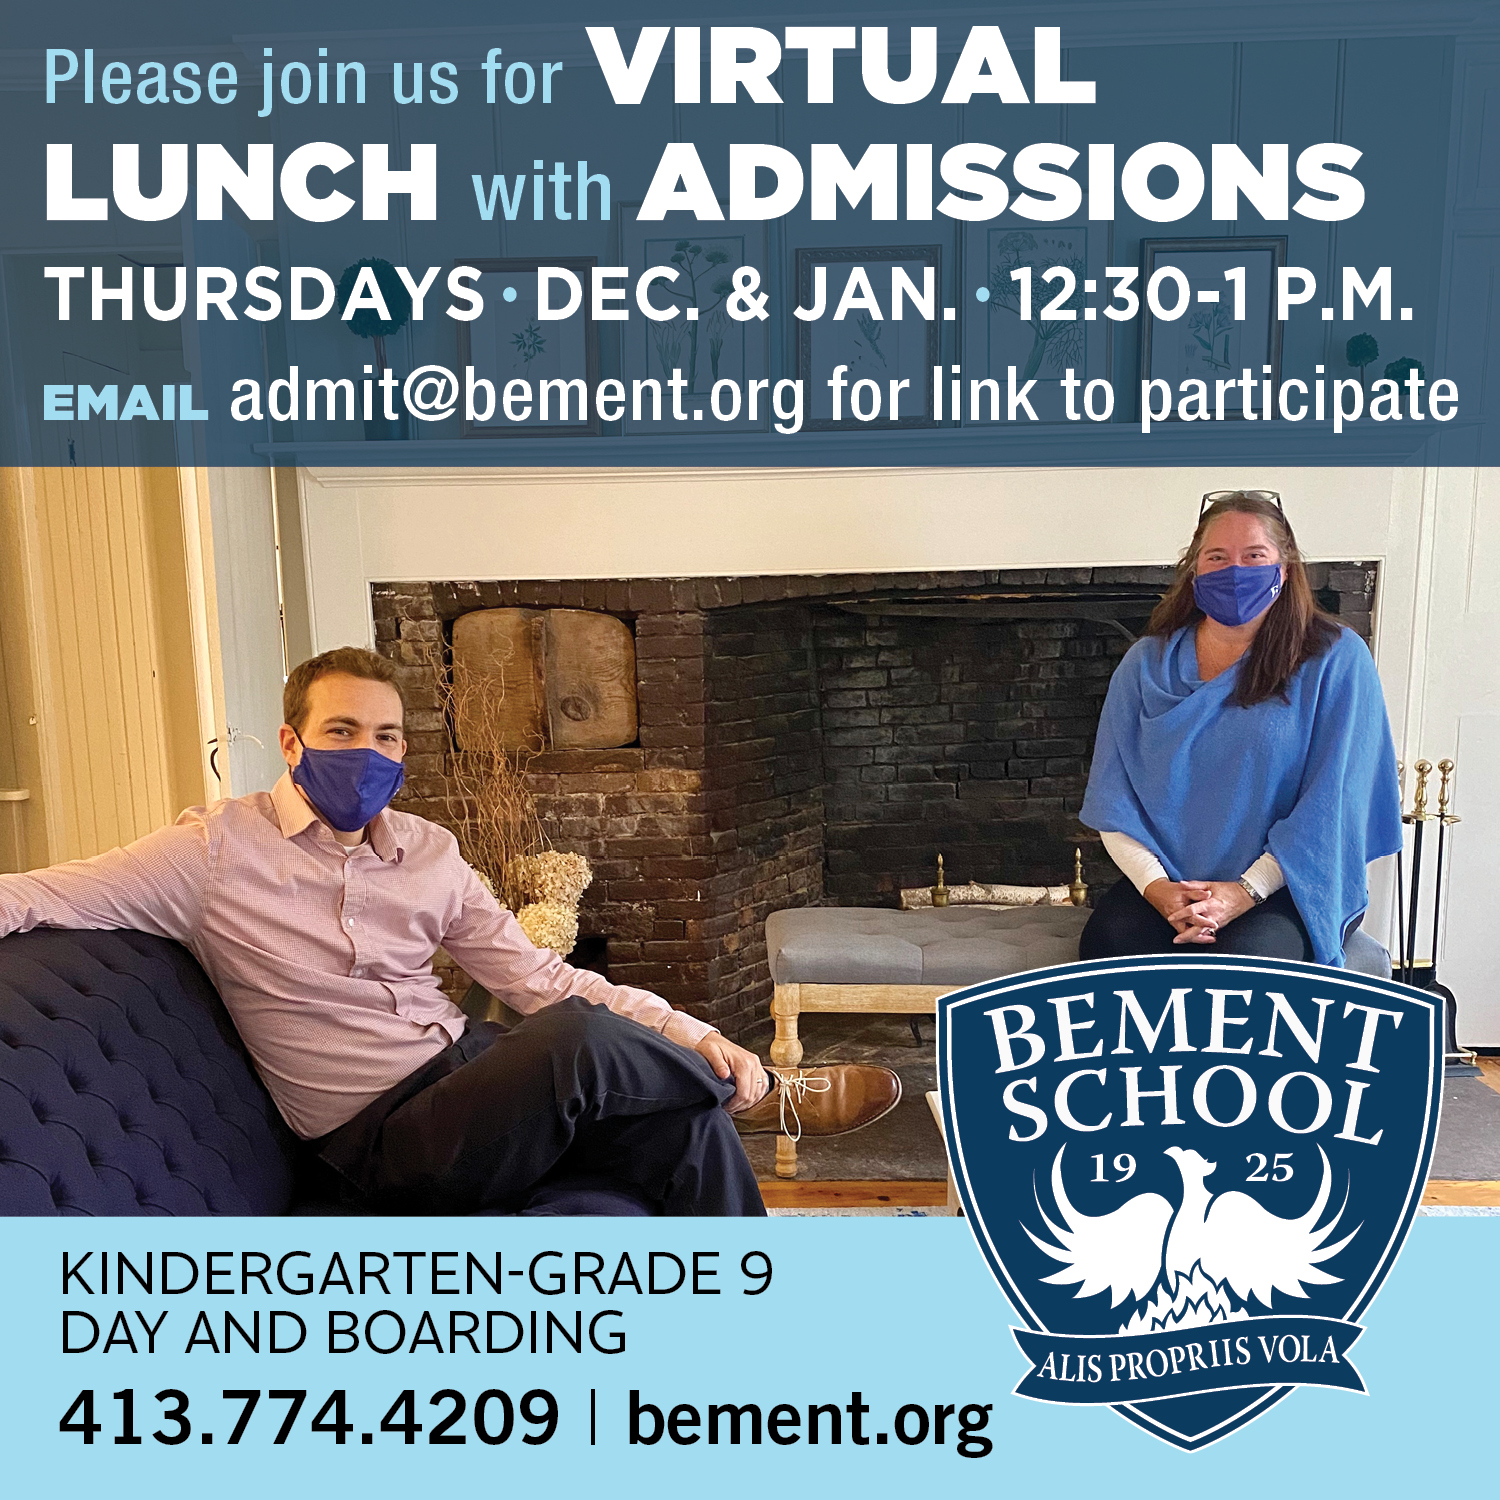 Sponsor Image for Bement School announding virtual lunch with admission on Thursdays in December and January from 12:30-1pm.